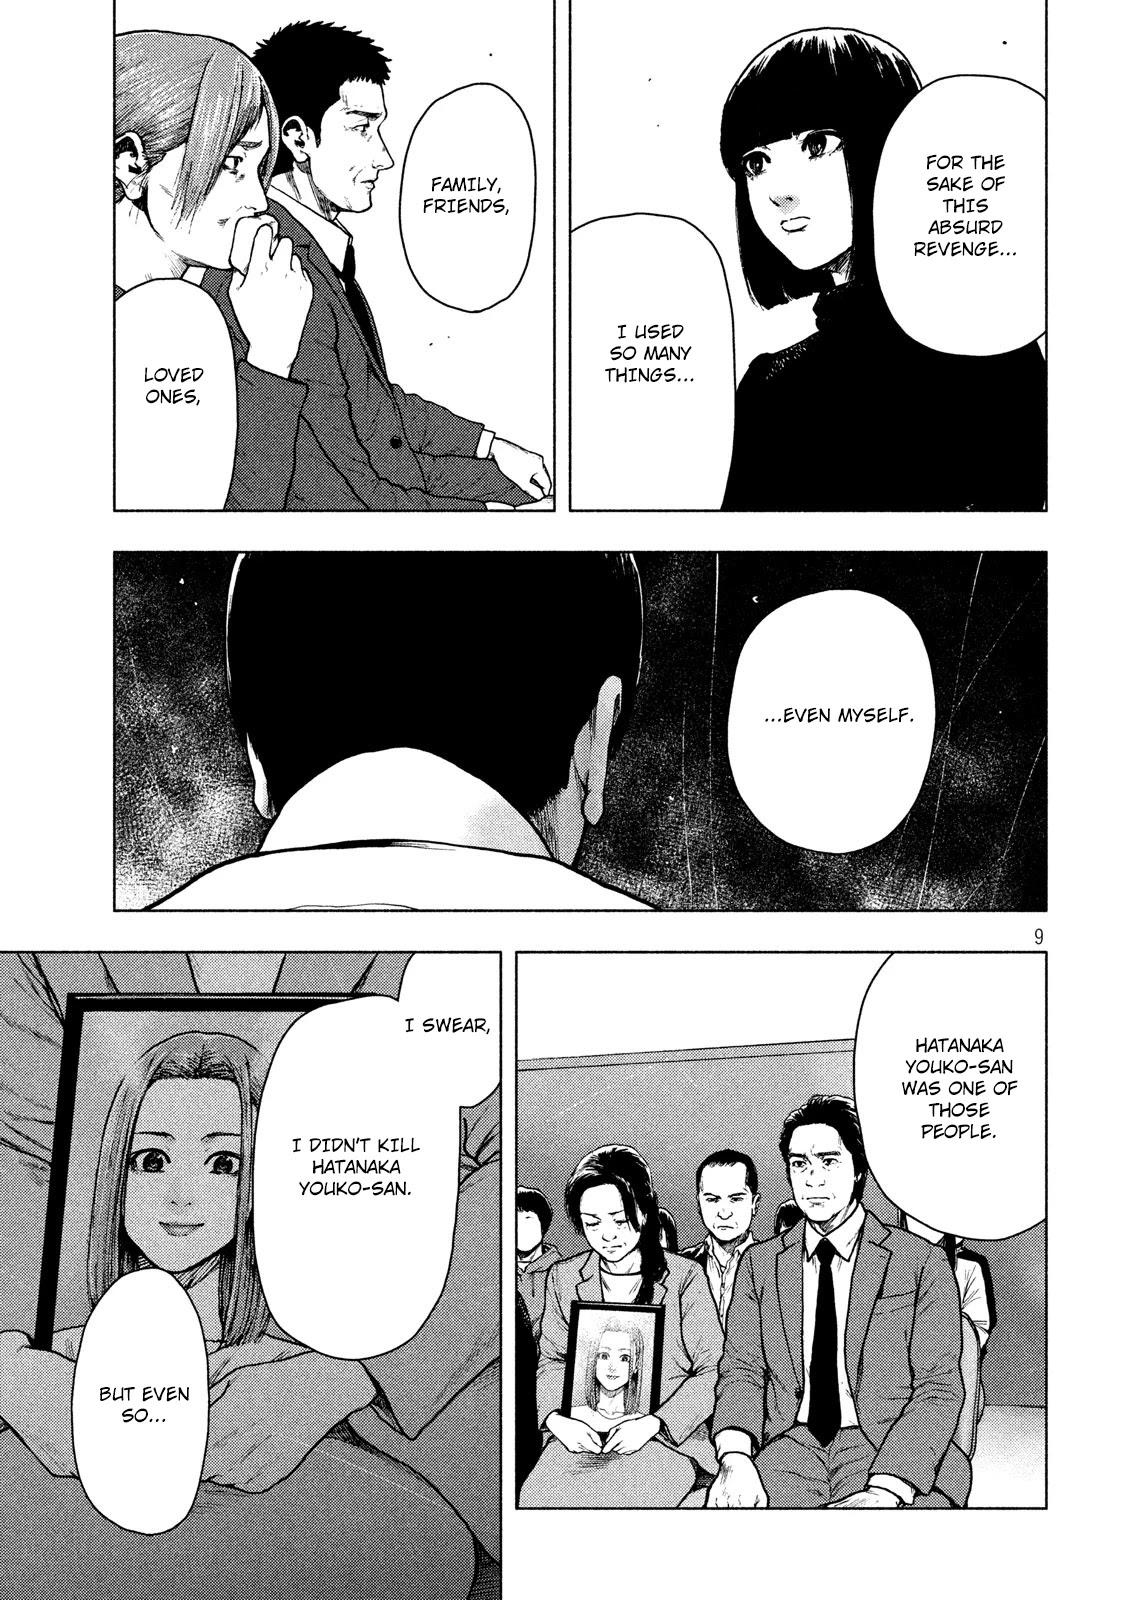 My Dearest Self With Malice Aforethought Chapter 52 page 9 - Mangakakalots.com